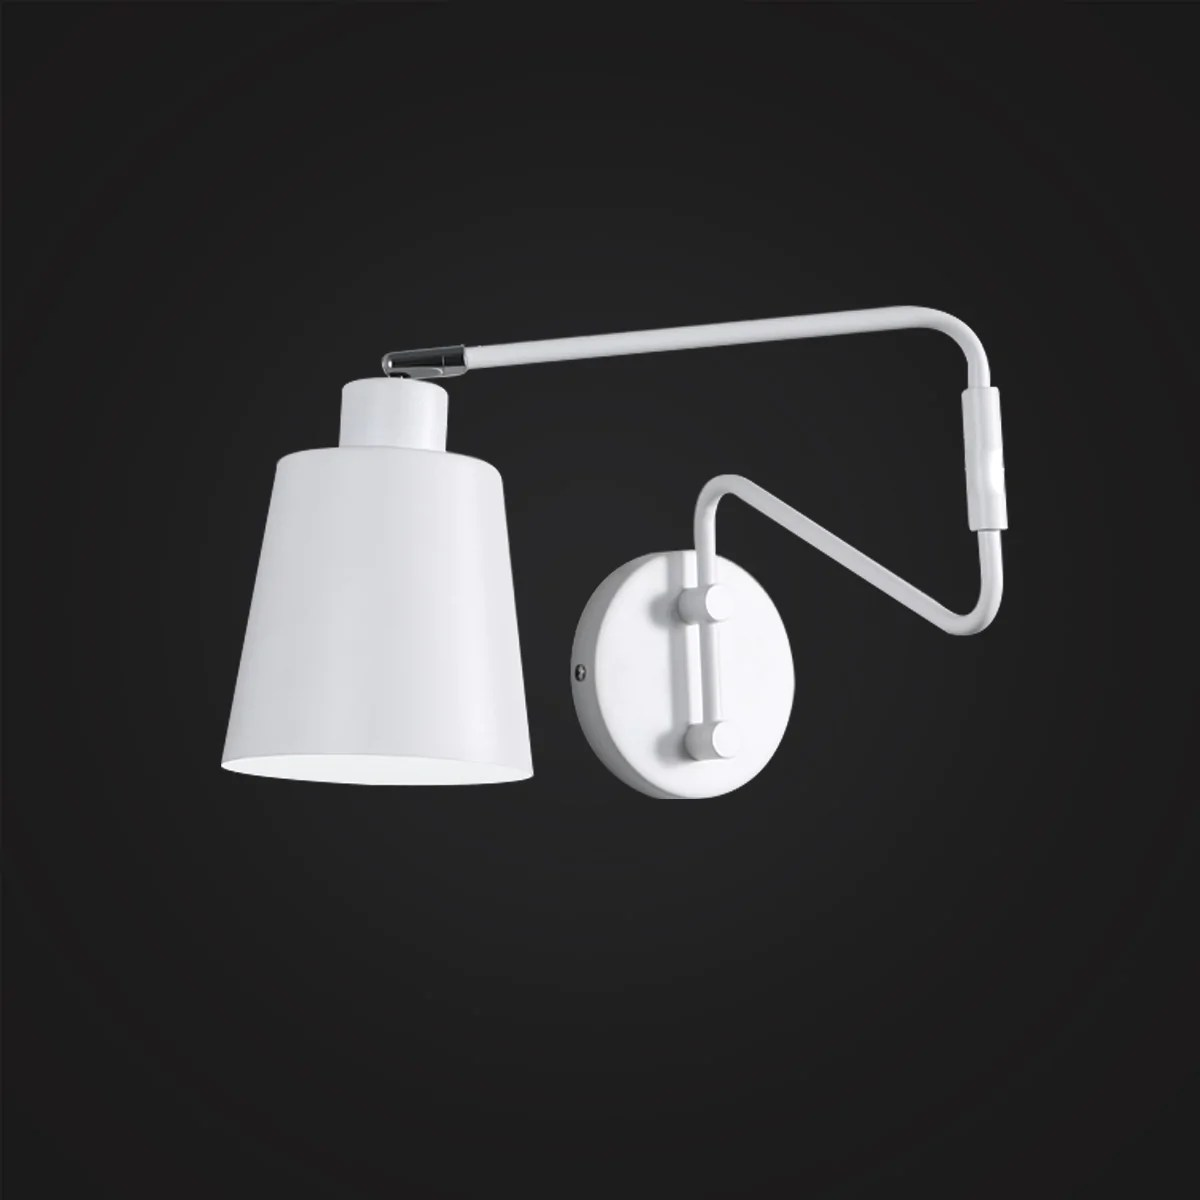 Swing Wall Lamp Madden Swing Arm Wall Lamp